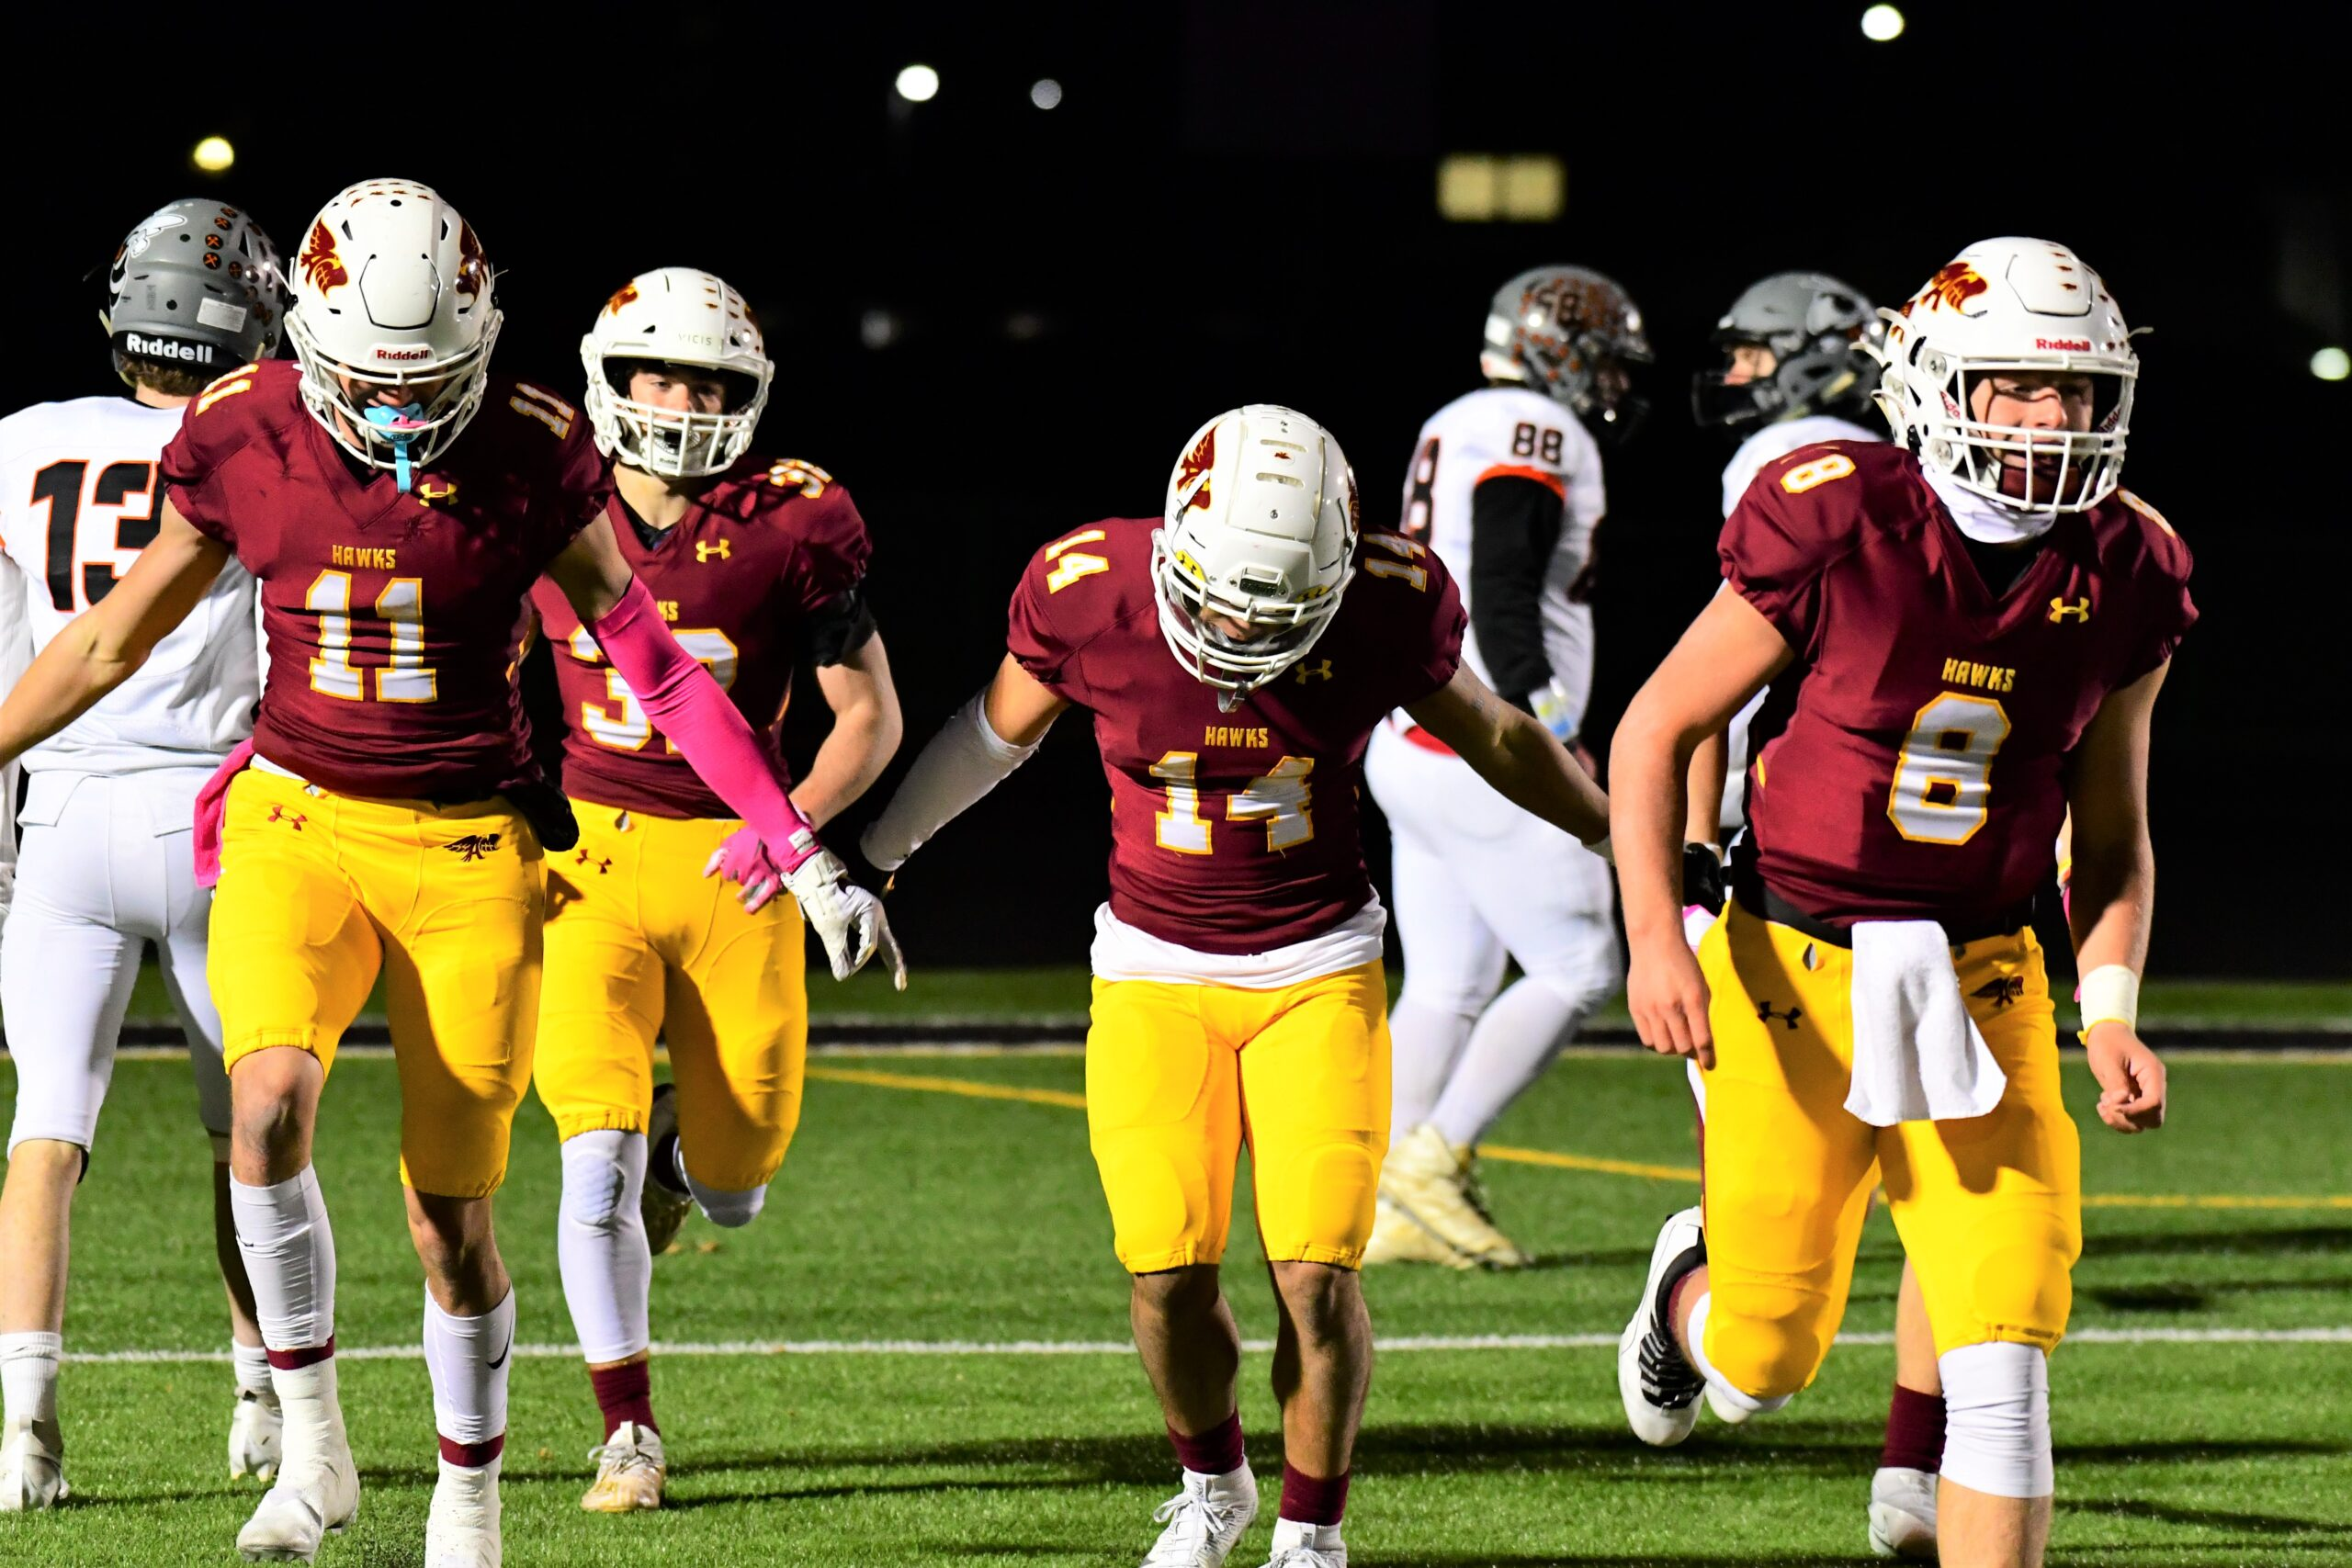 Four Ankeny players named to Register's all-Iowa elite football team